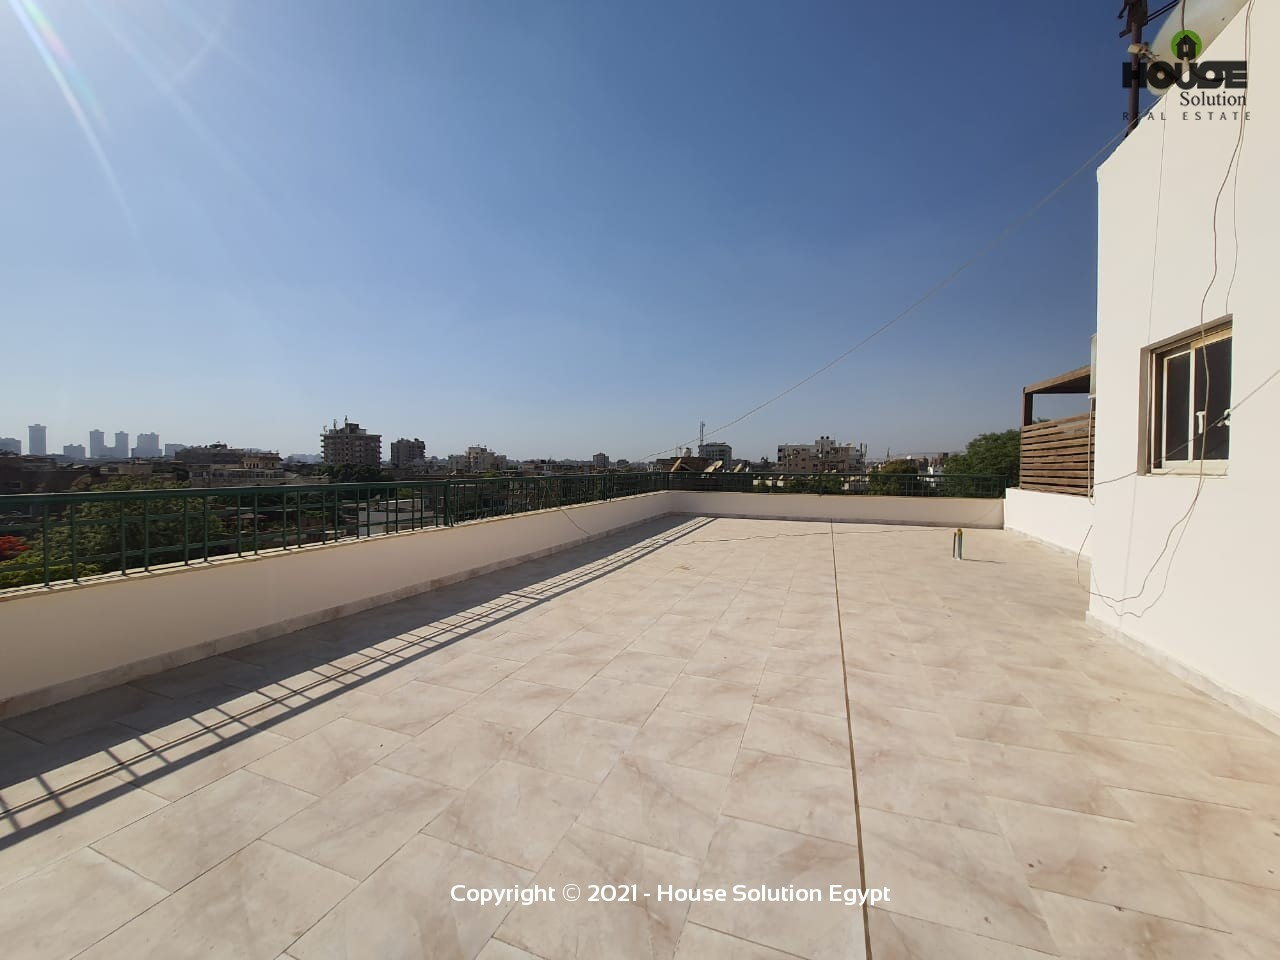 Outstanding Penthouse Duplex For Rent In Degla El Maadi Near Cairo American College (C.a.c) - 4965 Featured Image